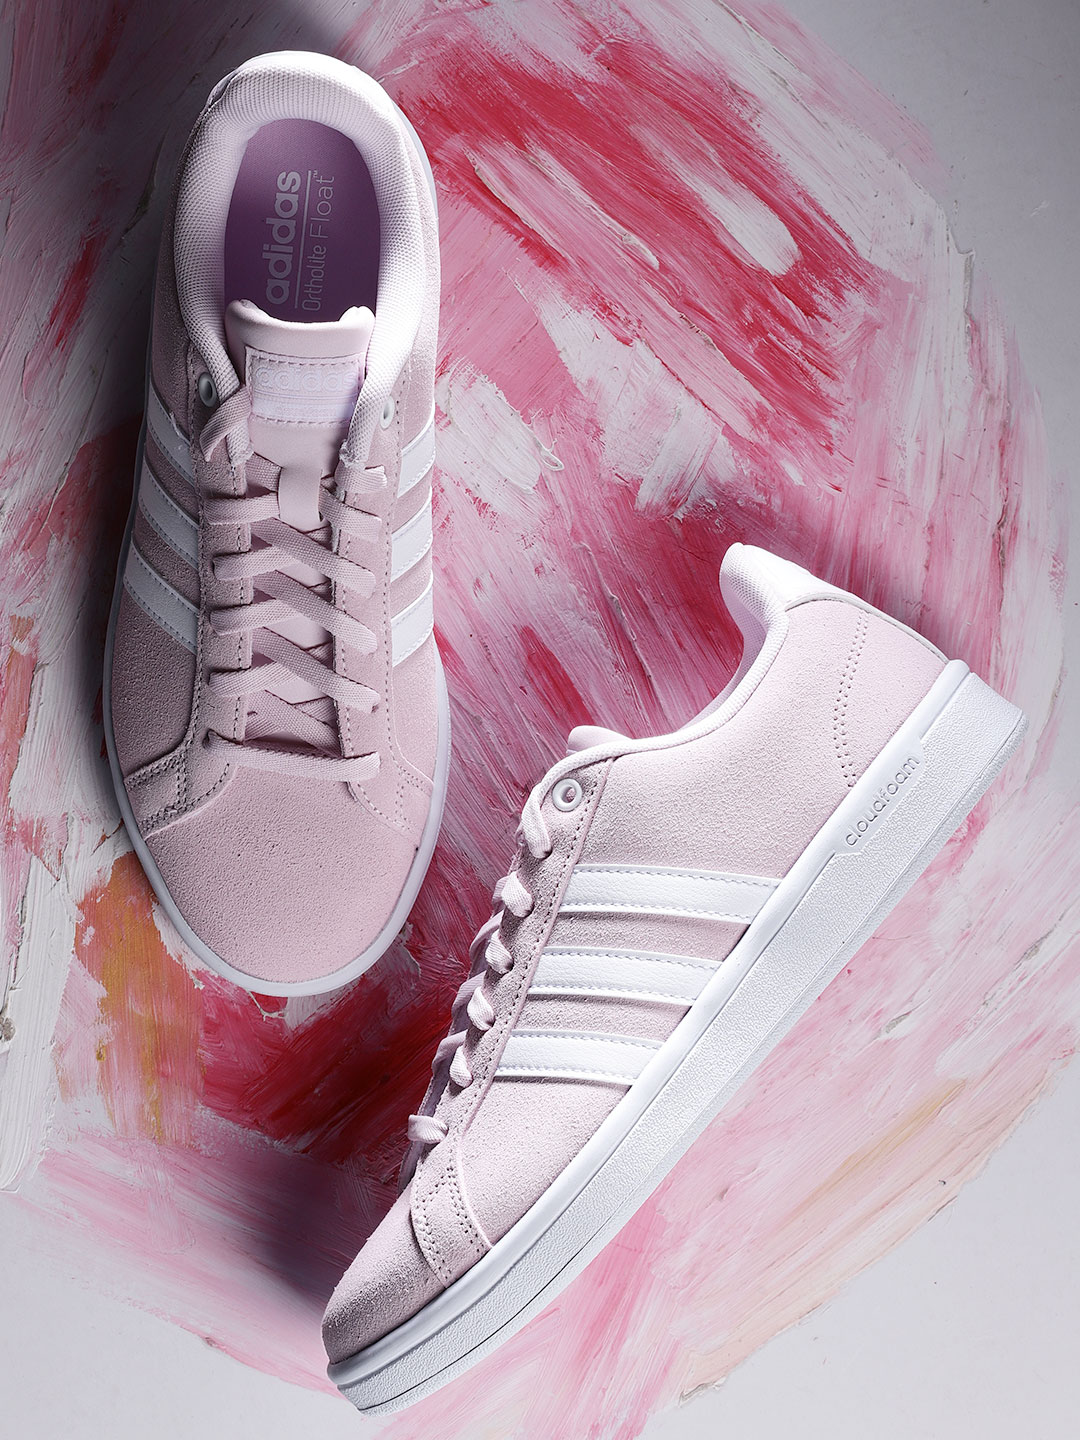 huge selection of 7dda9 13a06 Adidas Suede Shoes - Buy Adidas Suede Shoes online in India